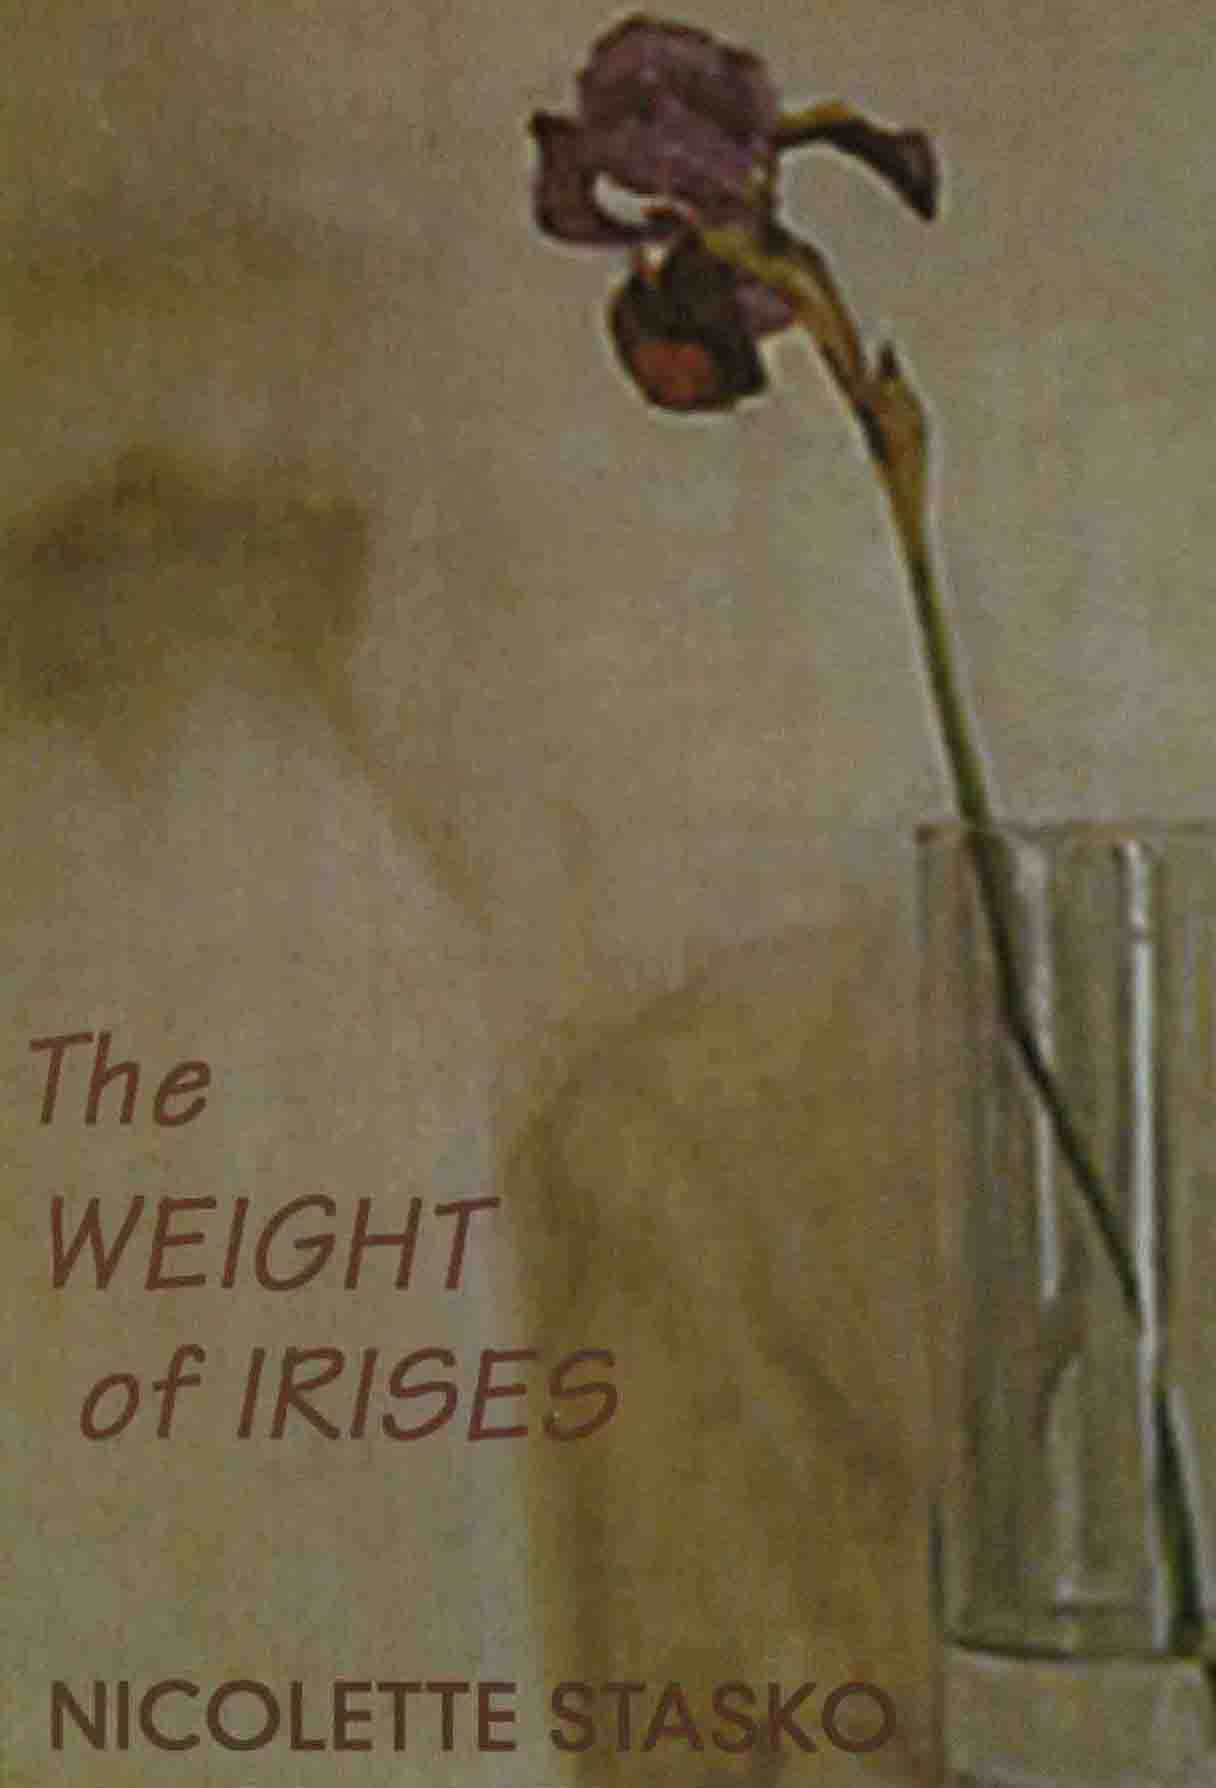 Cover of The Weight of Irises